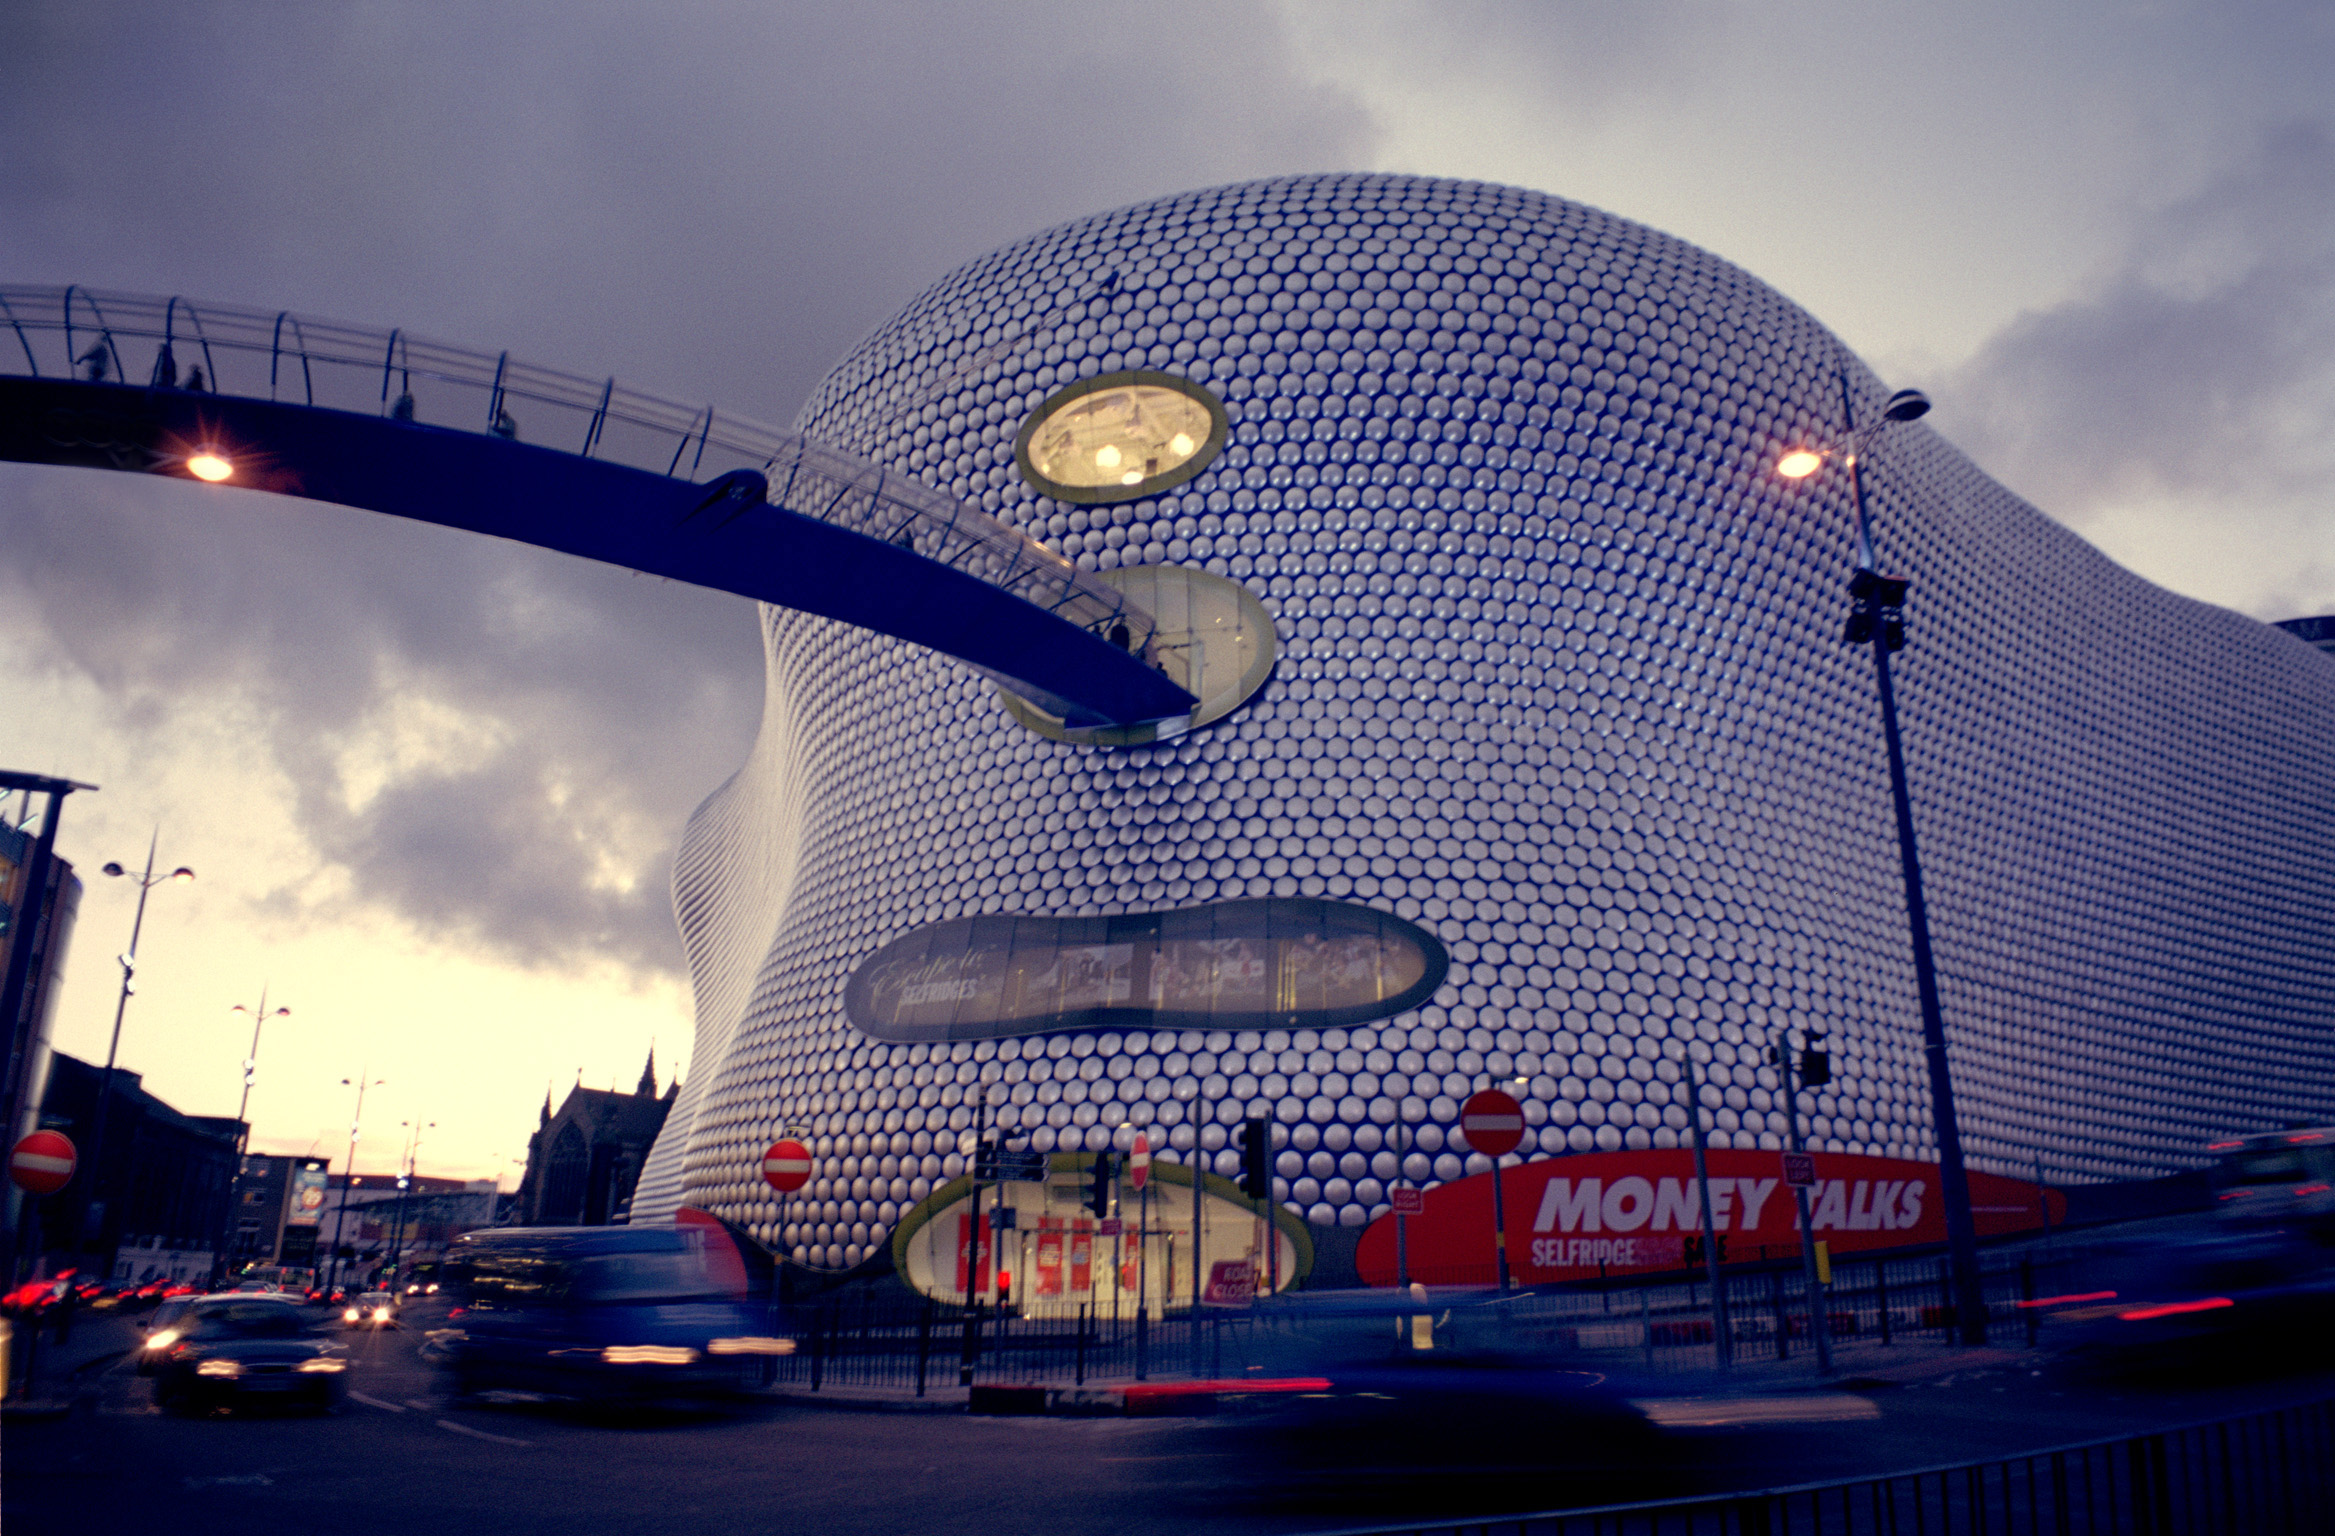 Street Scene Along Famous Bullring Shopping Center, Located at Birmingham, England During Night Time.